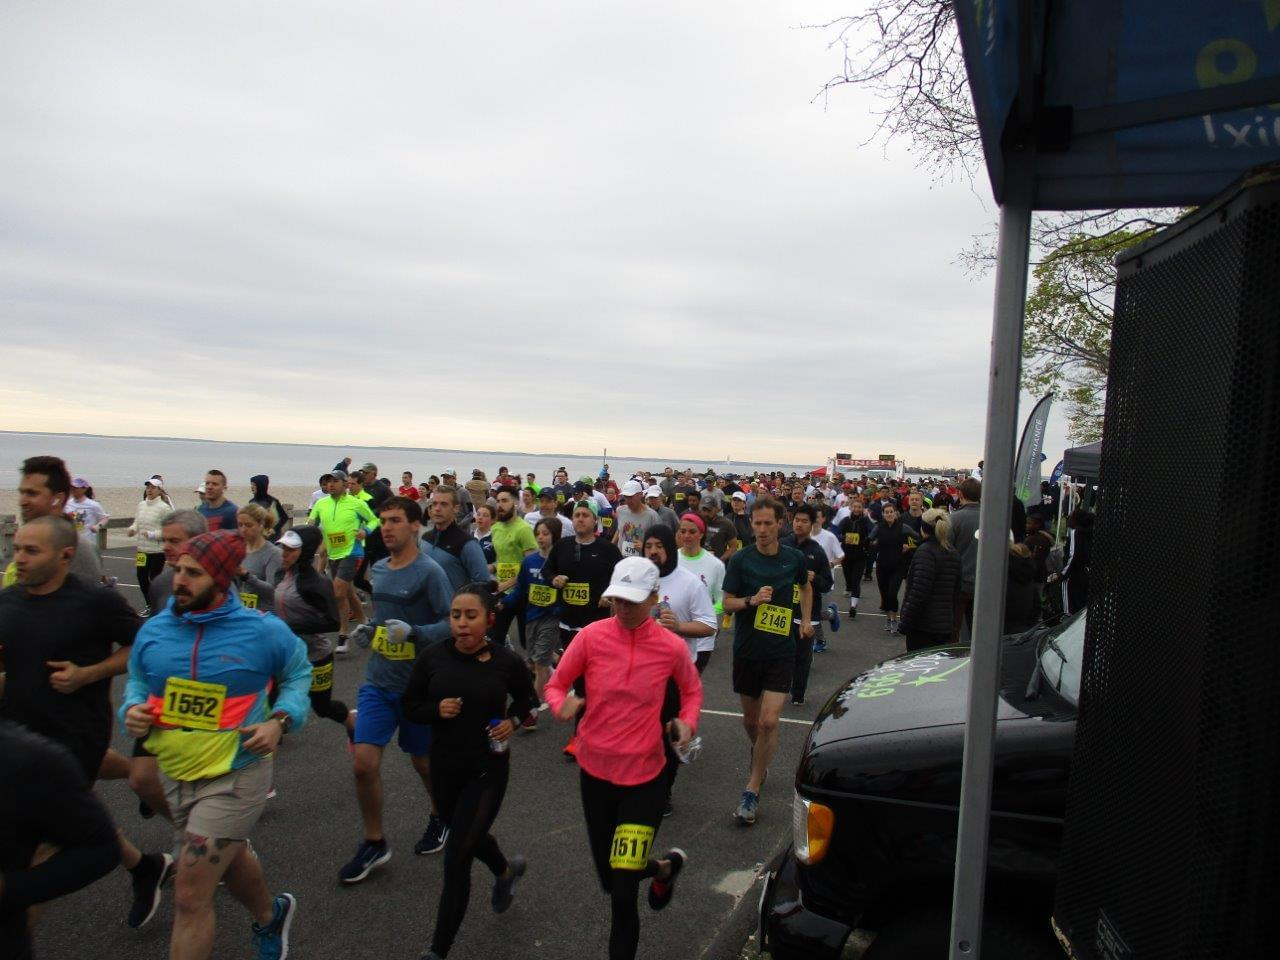 Minute Man Road Races at Compo Beach 4/28/19